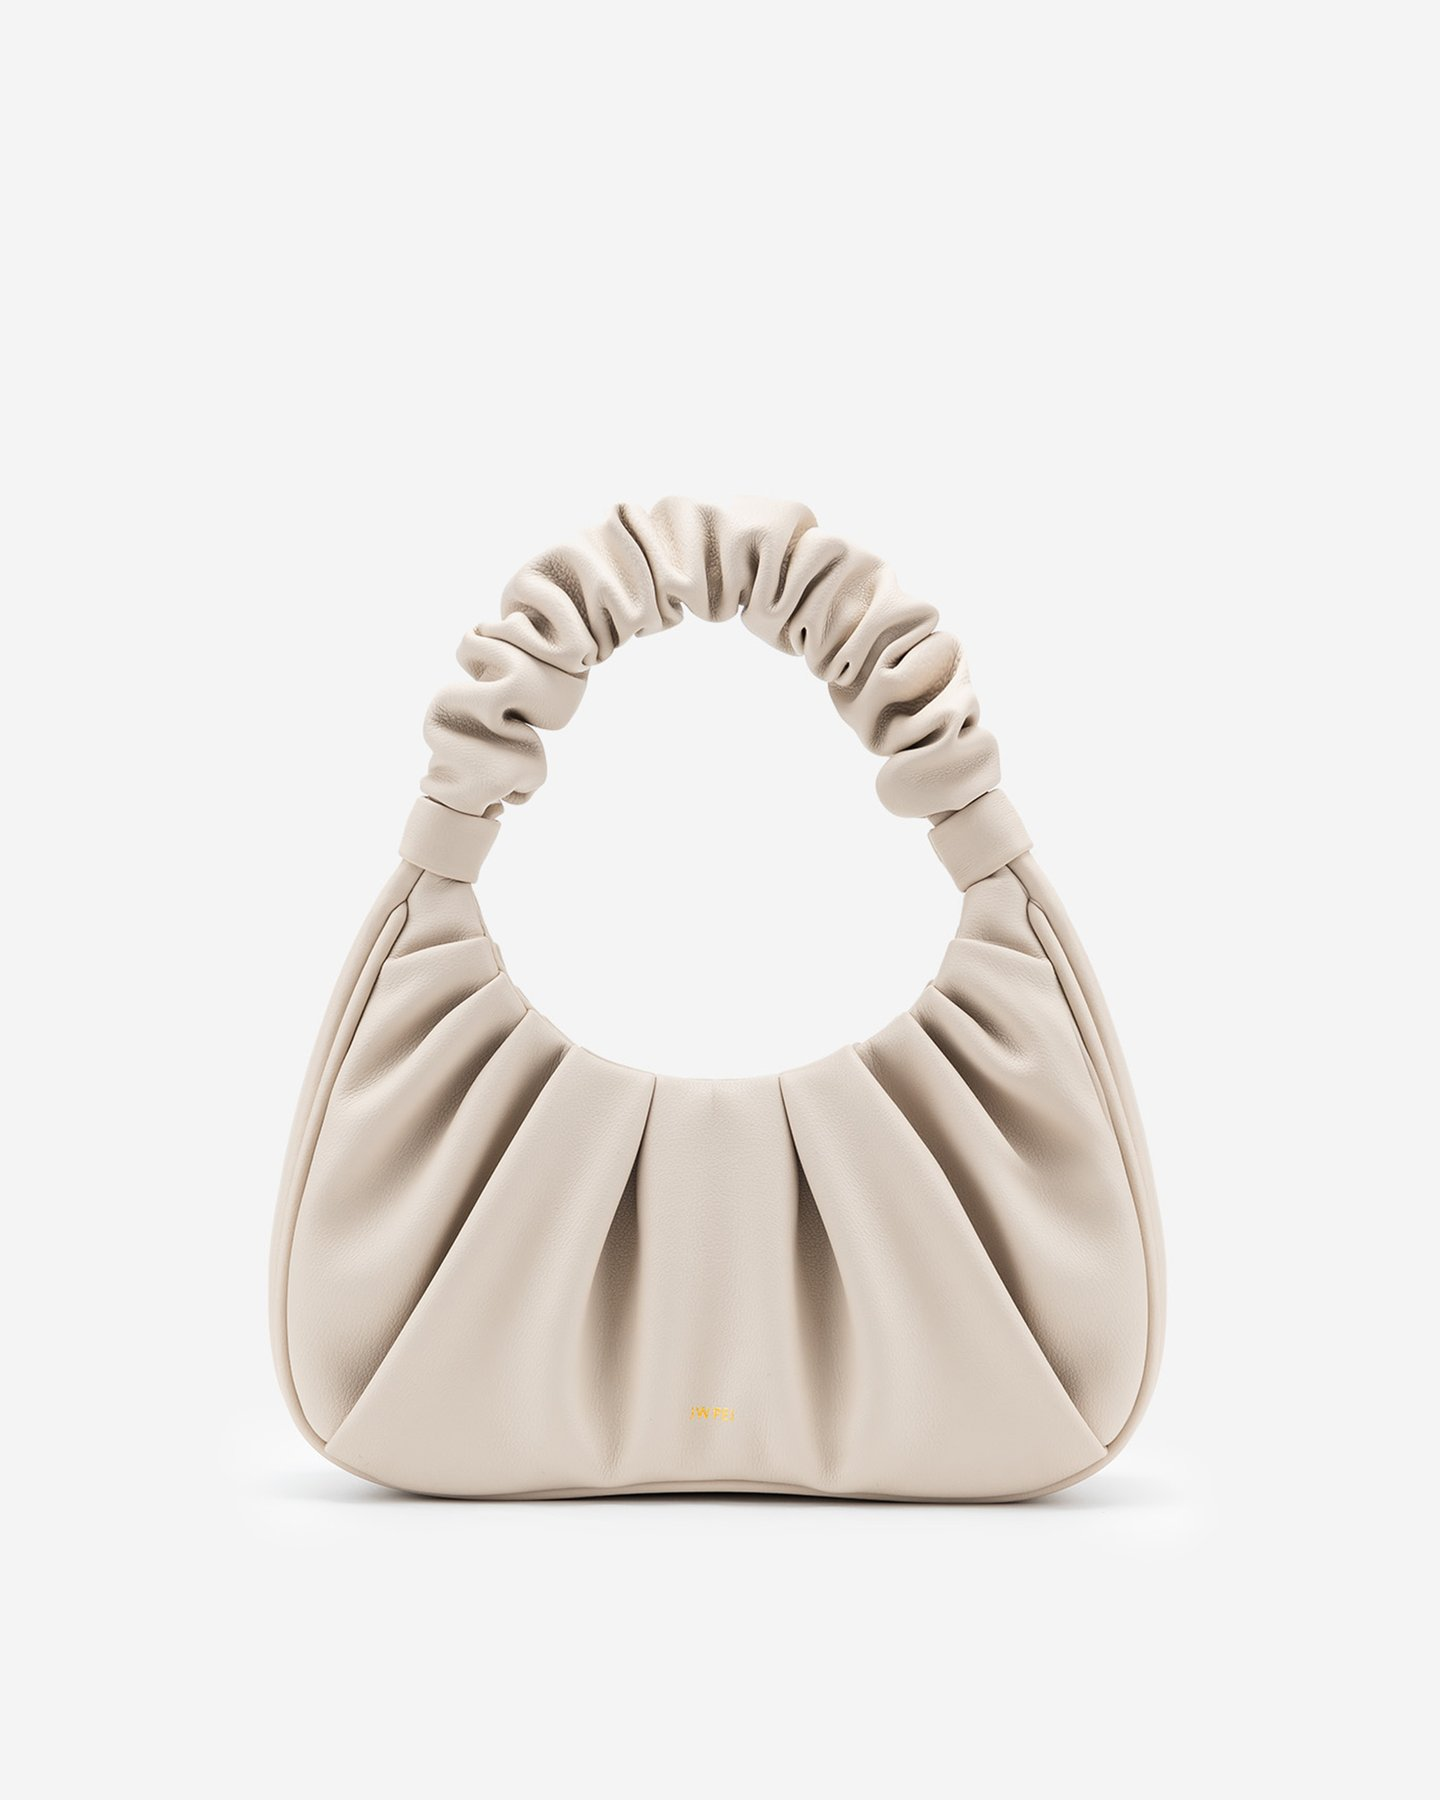 Gabbi Bag - Ivory by Jw Pei, available on jwpei.com for $79 Hailey Baldwin Bags Exact Product